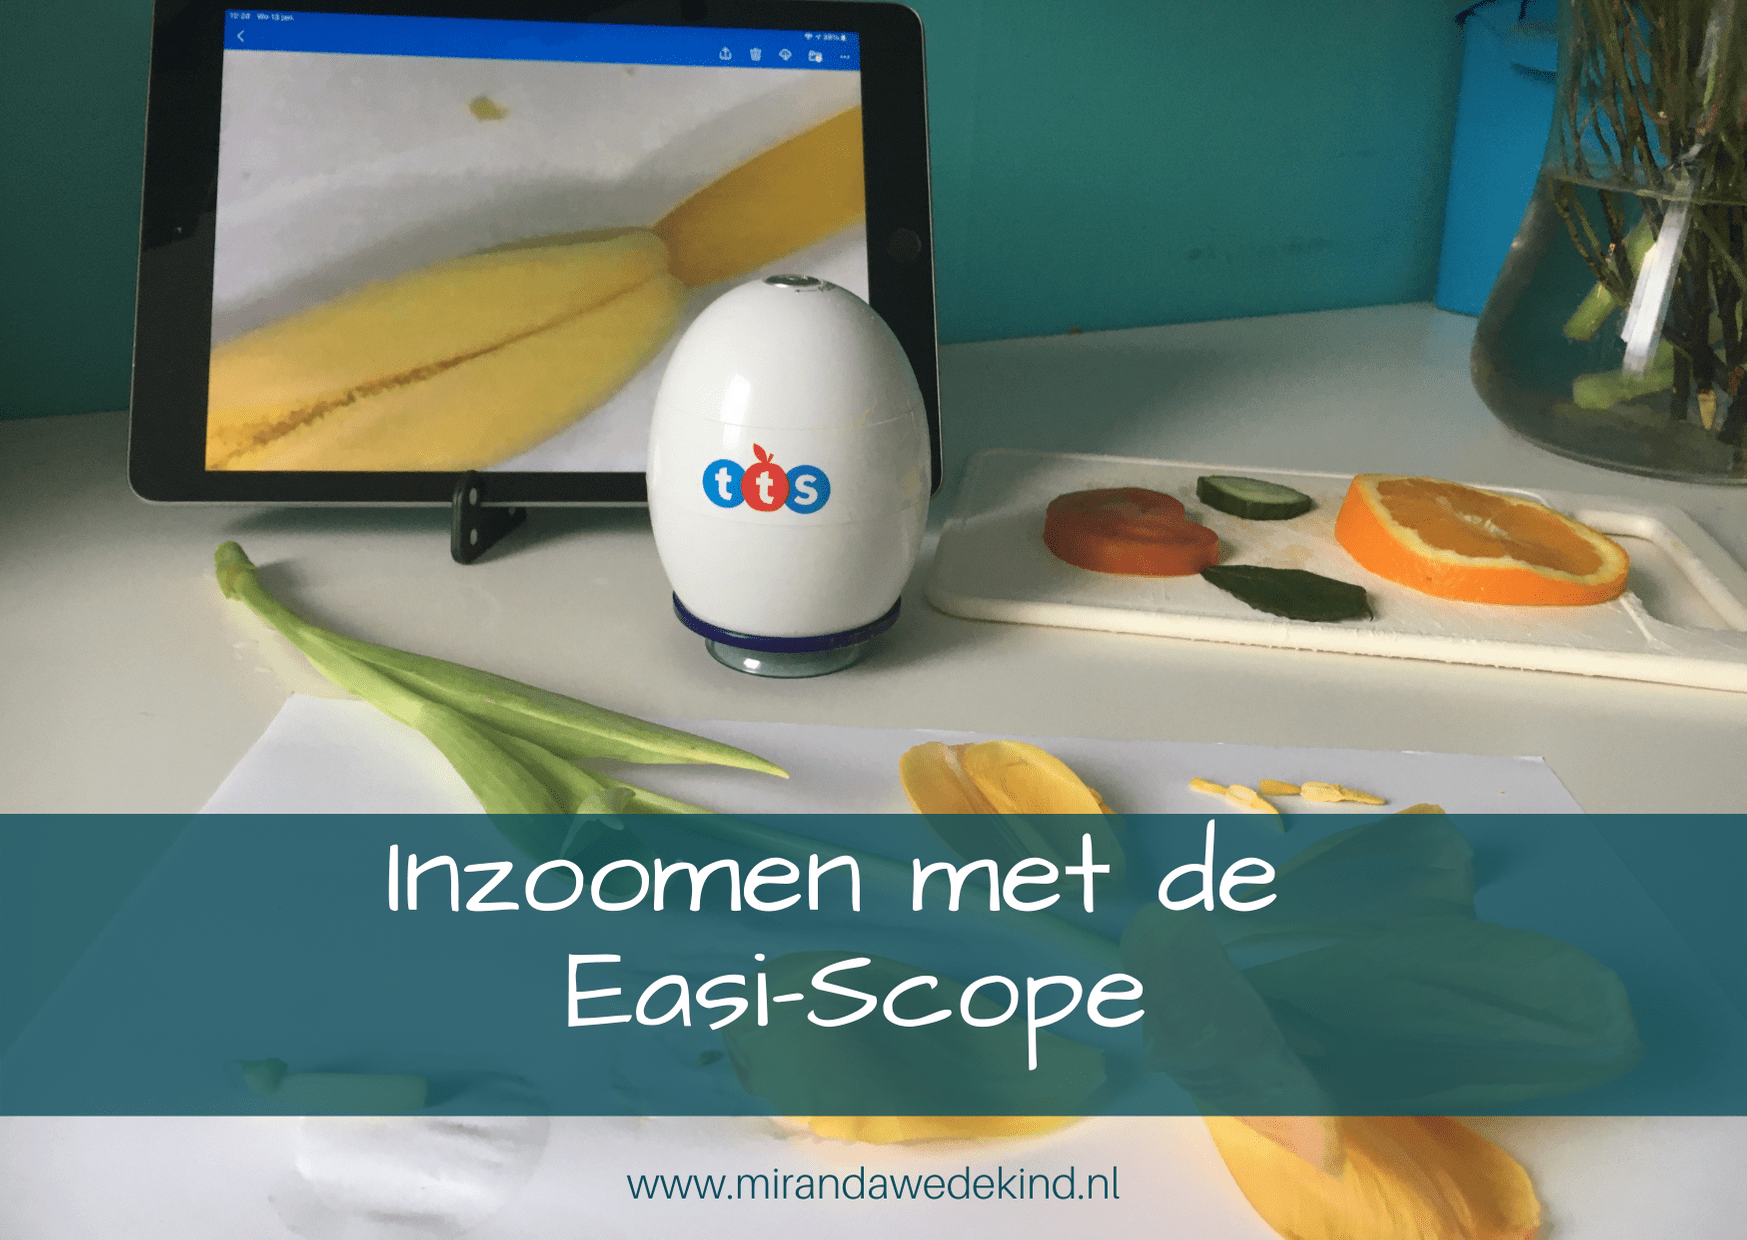 Inzoomen met de Easi-Scope